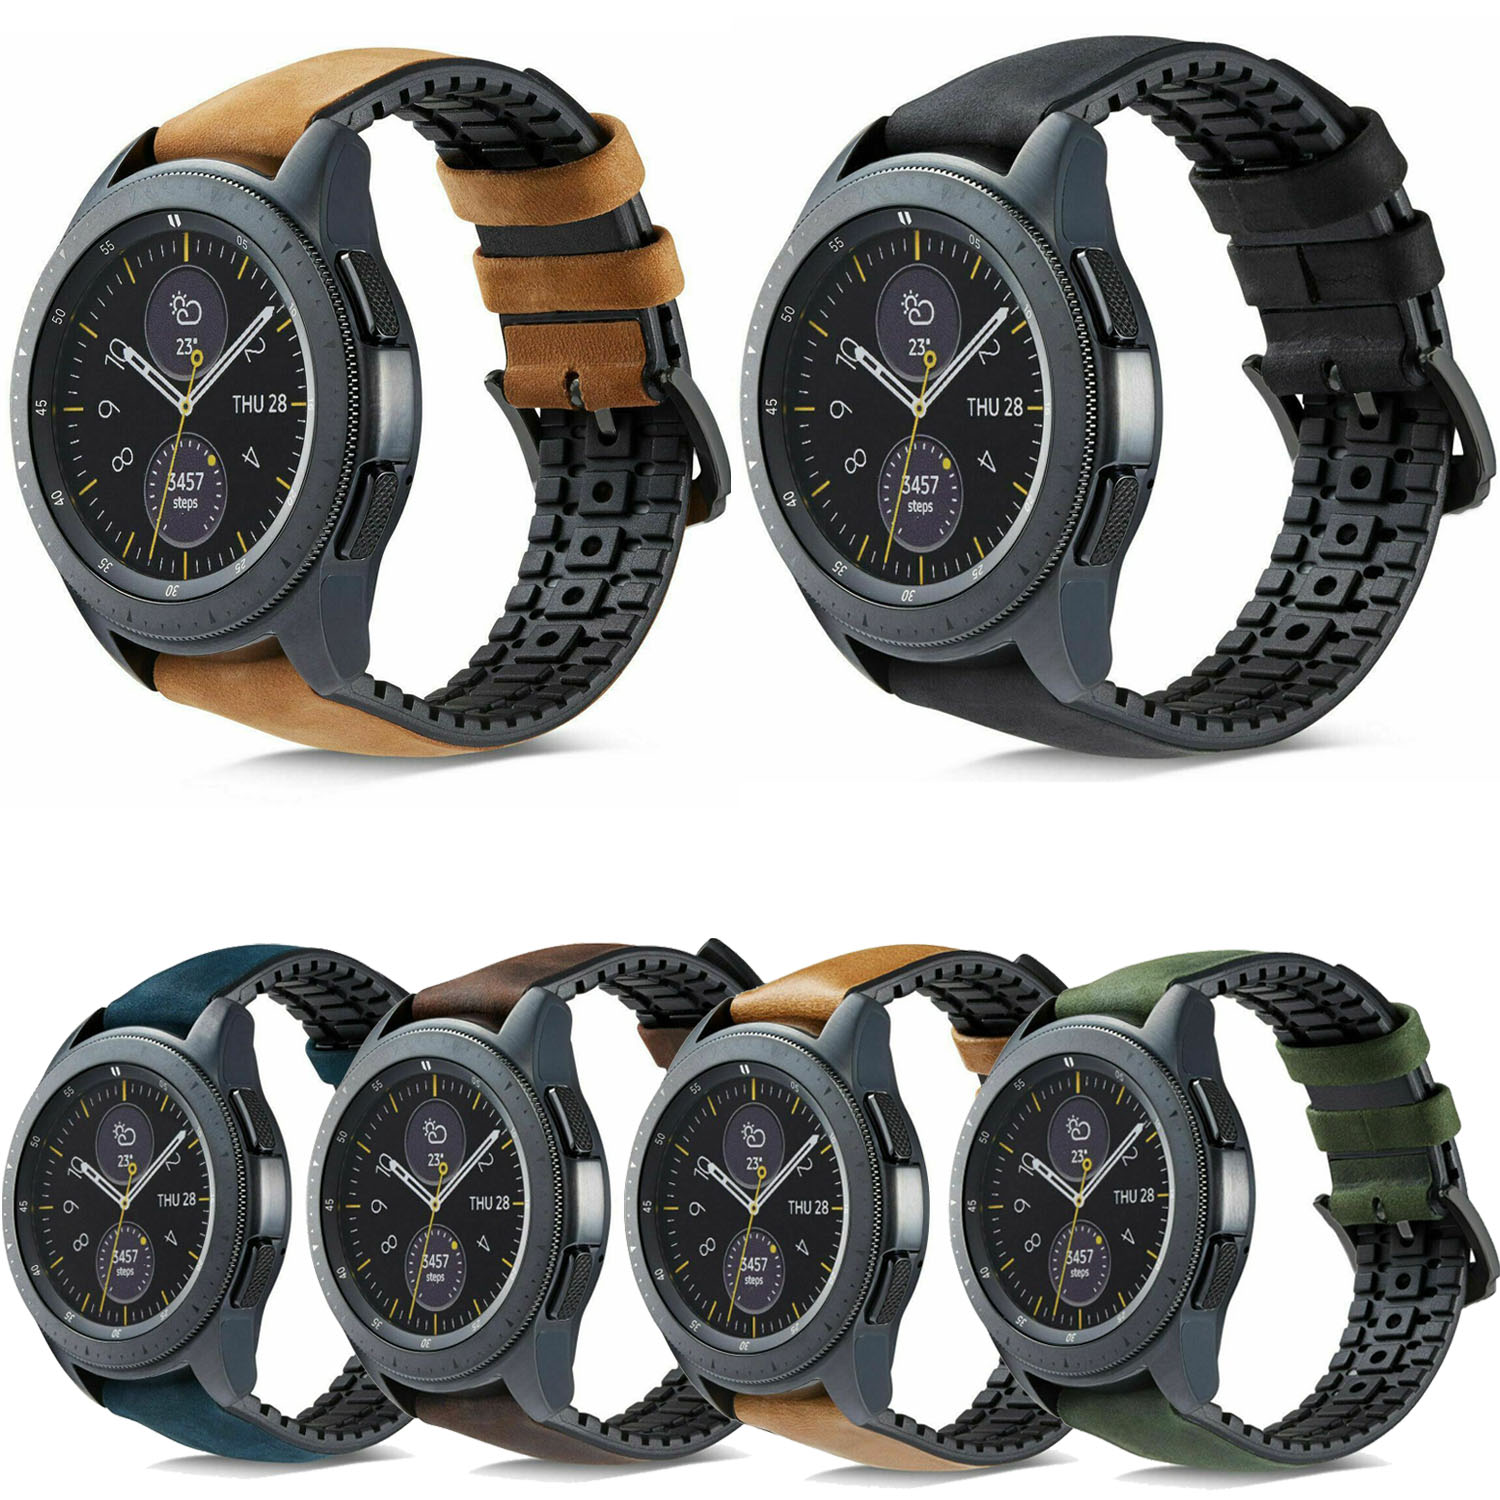 22mm Vintage Leather Strap For Samsung Galaxy Watch 46mm Band 20mm Sweat Proof Silicone Strap For Samsung Galaxy Watch 42mm Band